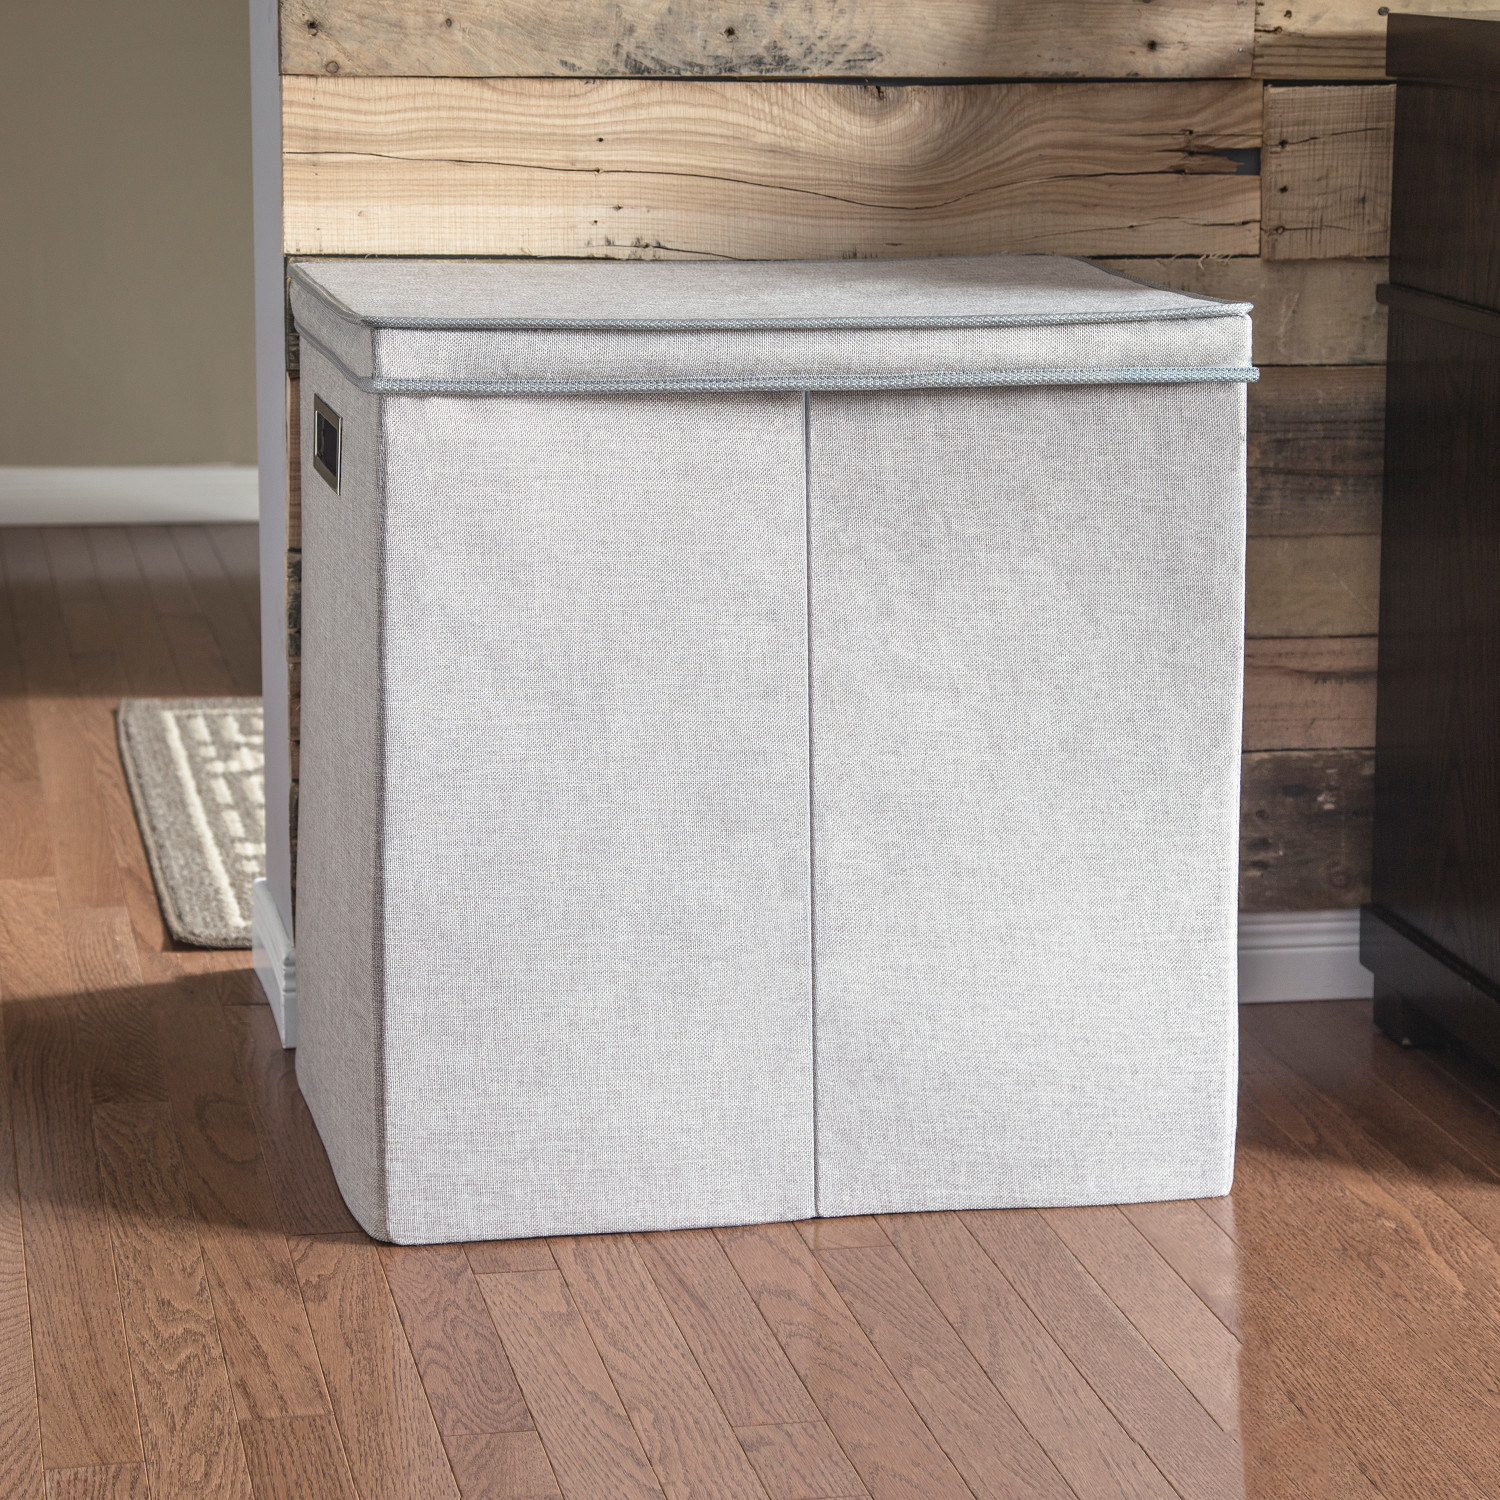 An image of a collapsible double sorter bathroom laundry hamper